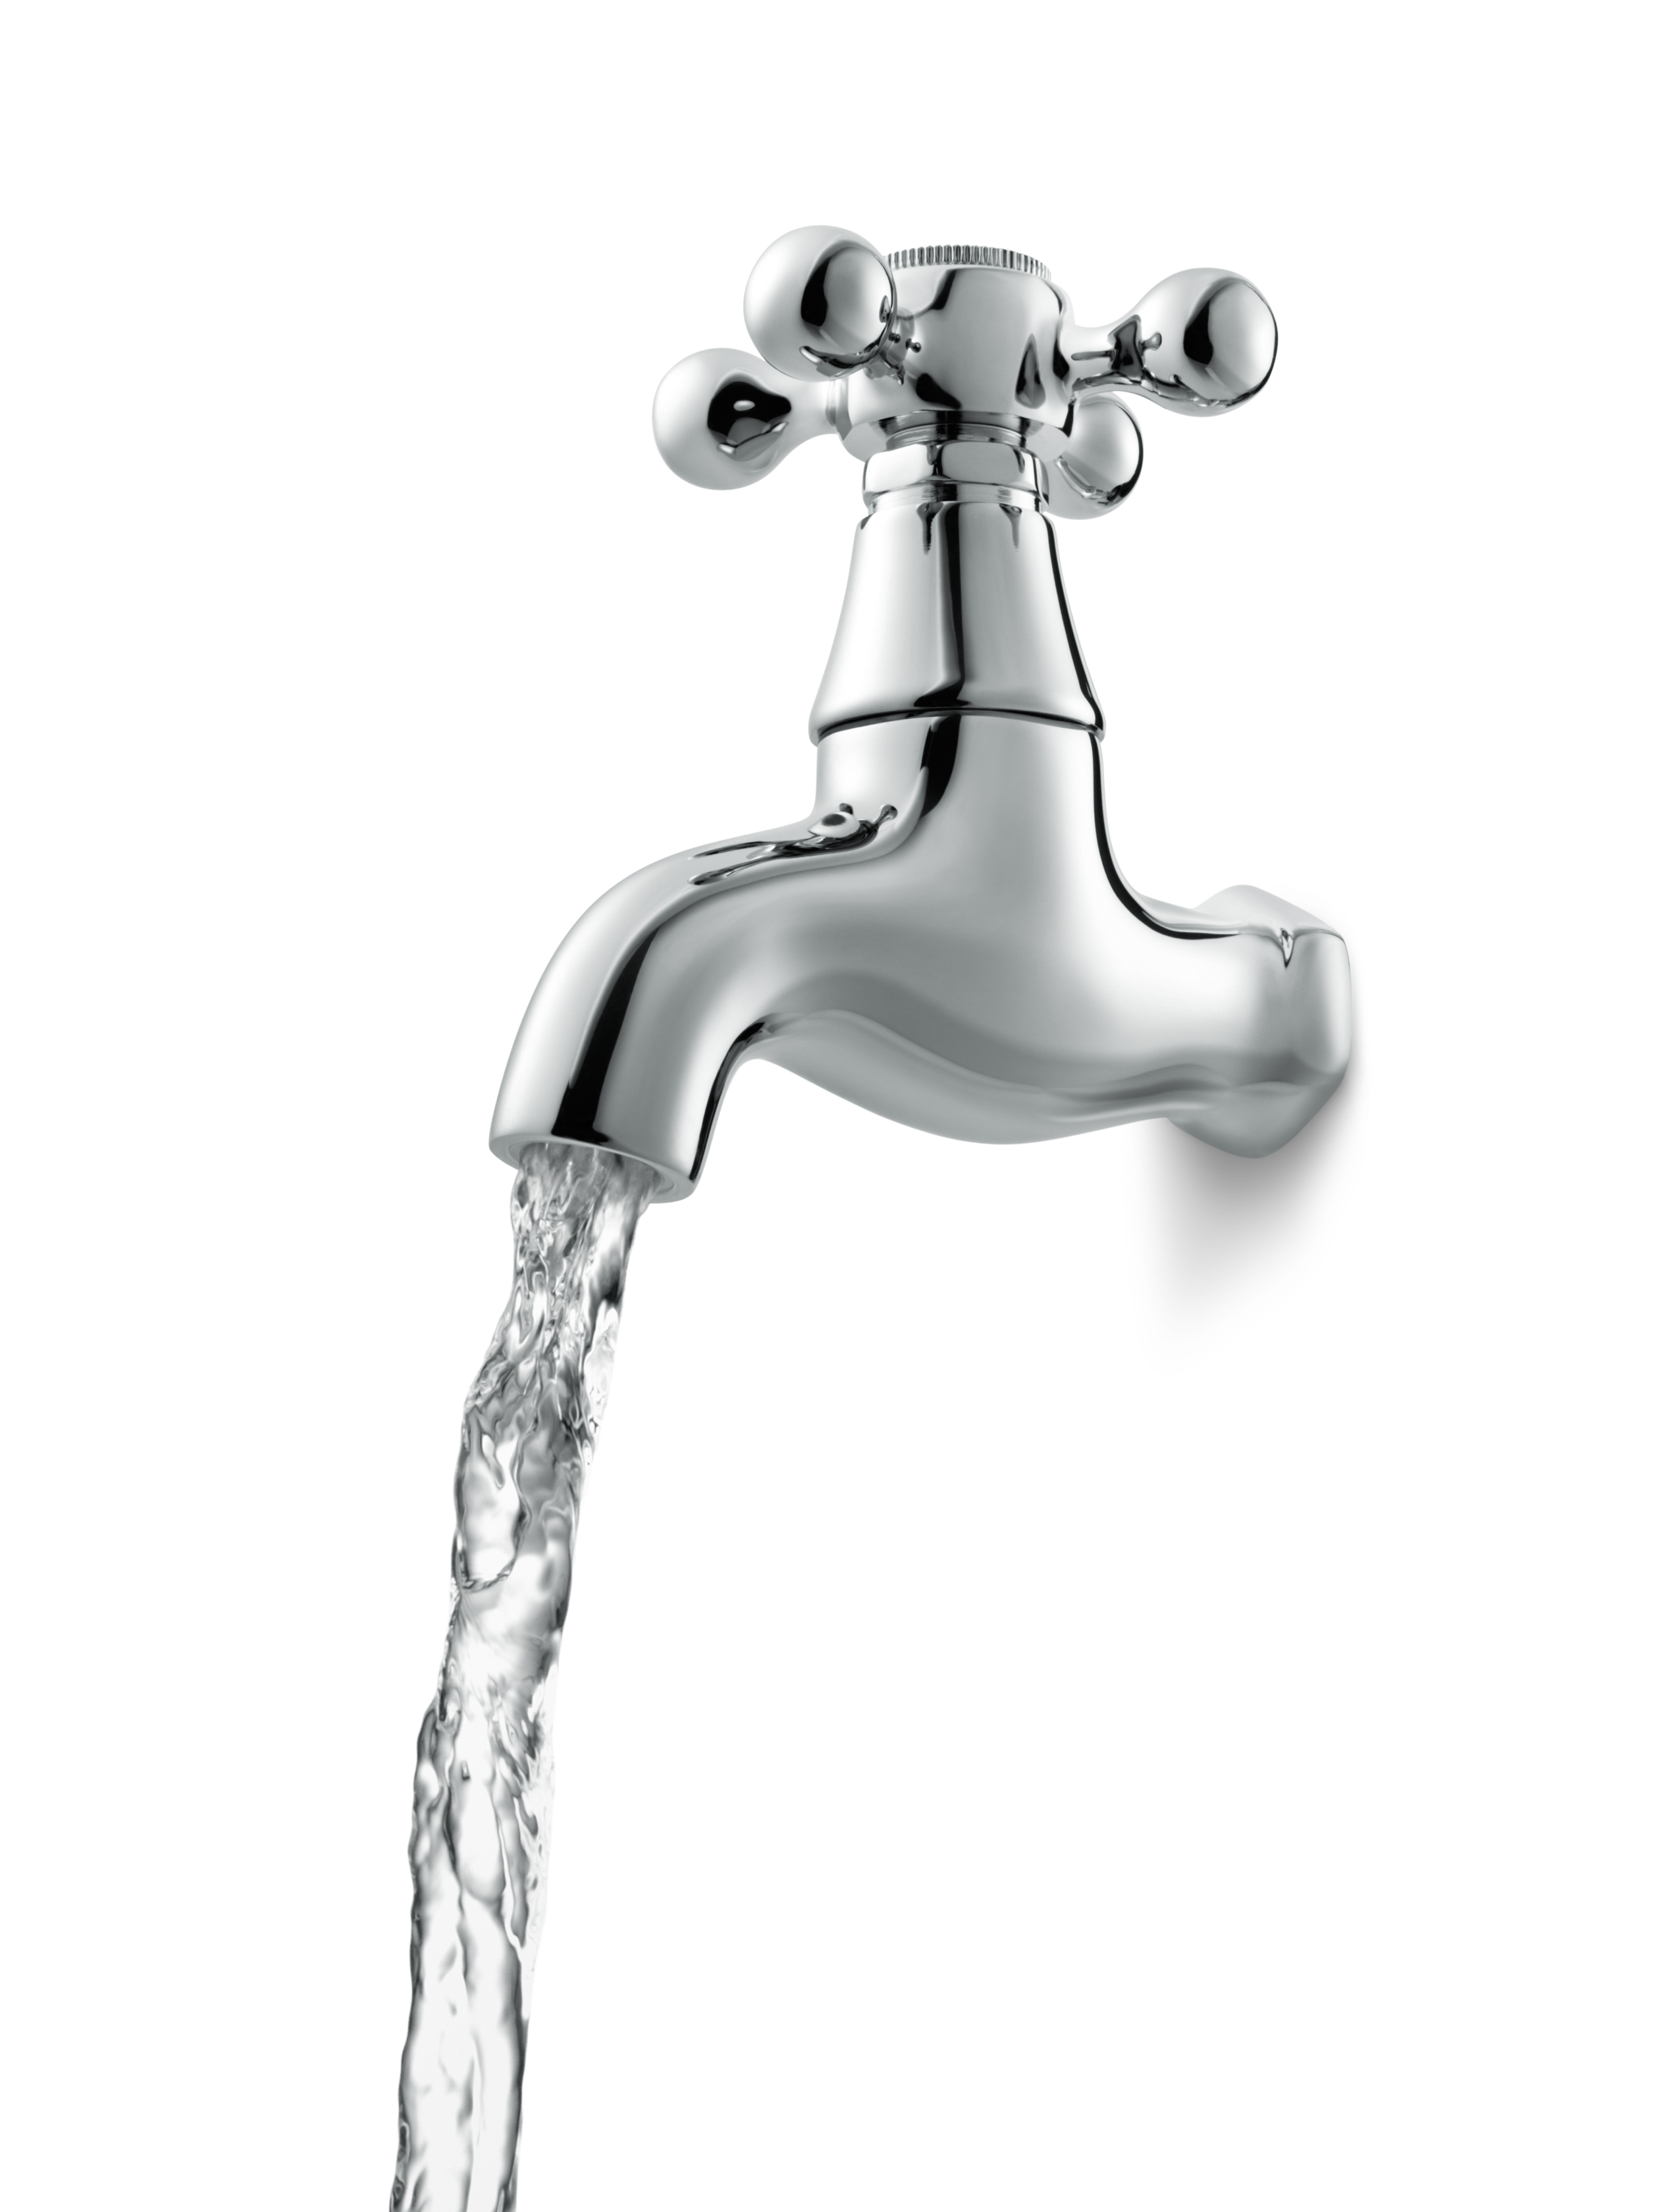 Water Faucet PNG Transparent Water Faucet.PNG Images. | PlusPNG